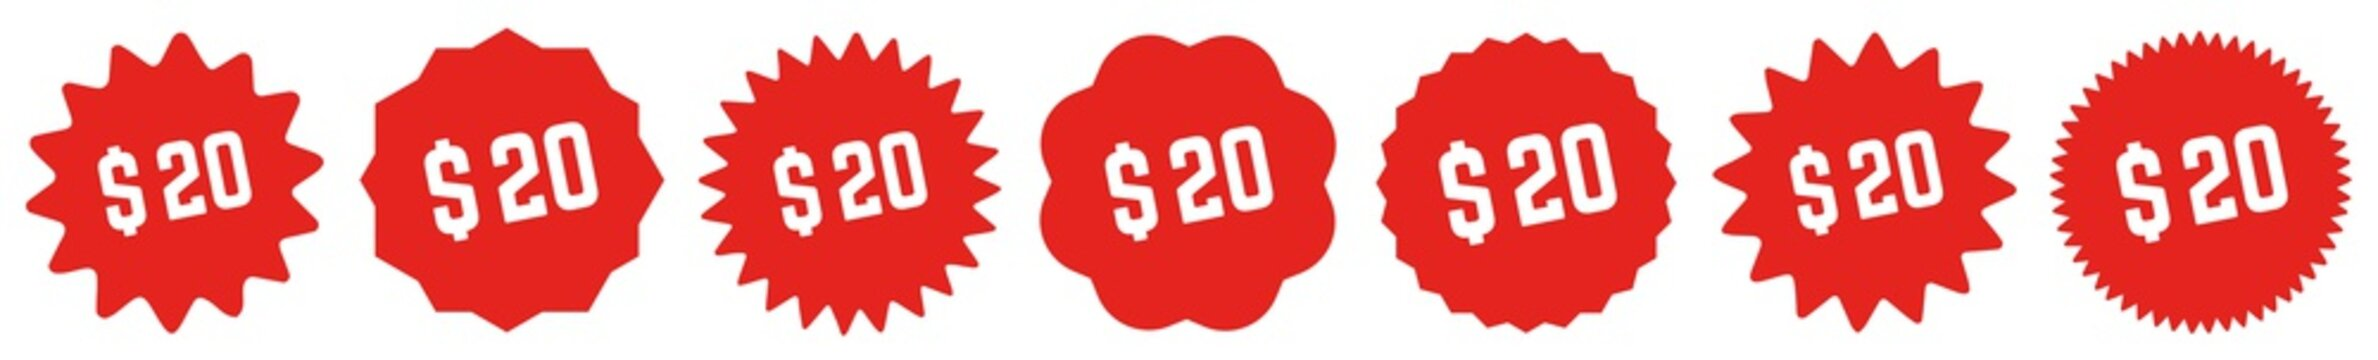 20 Price Tag Red | 20 Dollar | Special Offer Icon | Sale Sticker | Deal Label | Variations